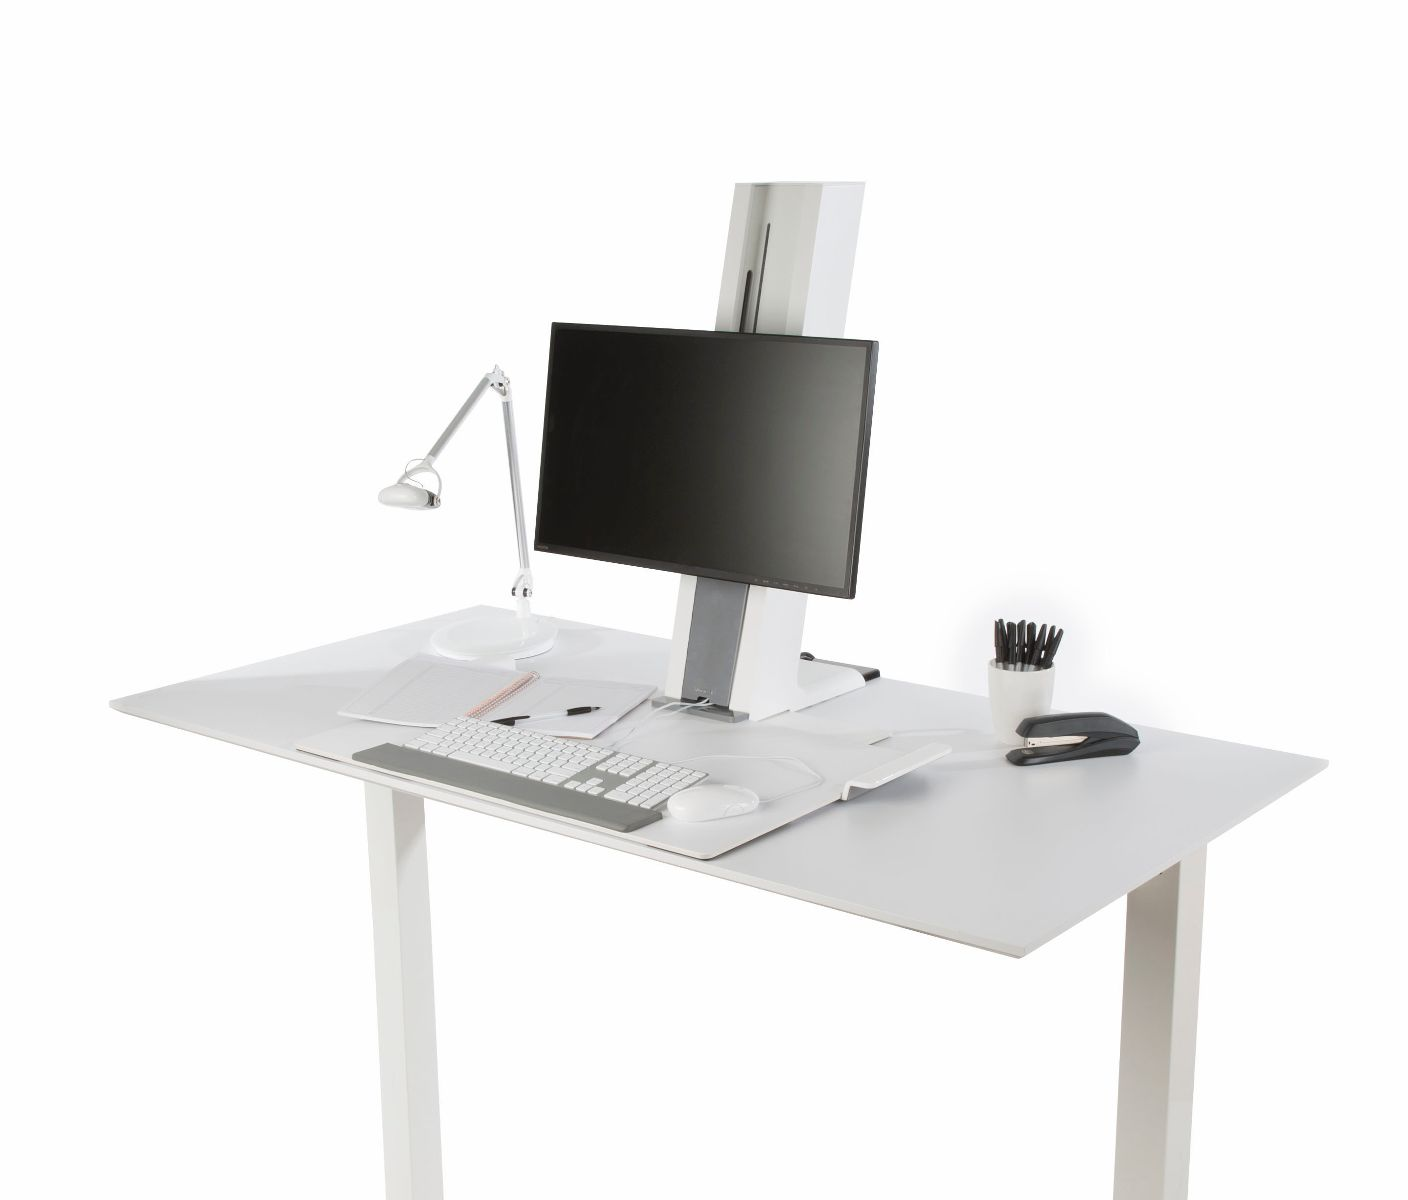 humanscale s quickstand workstation the sit stand converter for rh humanscale com humanscale standing desk review humanscale standing desk manual